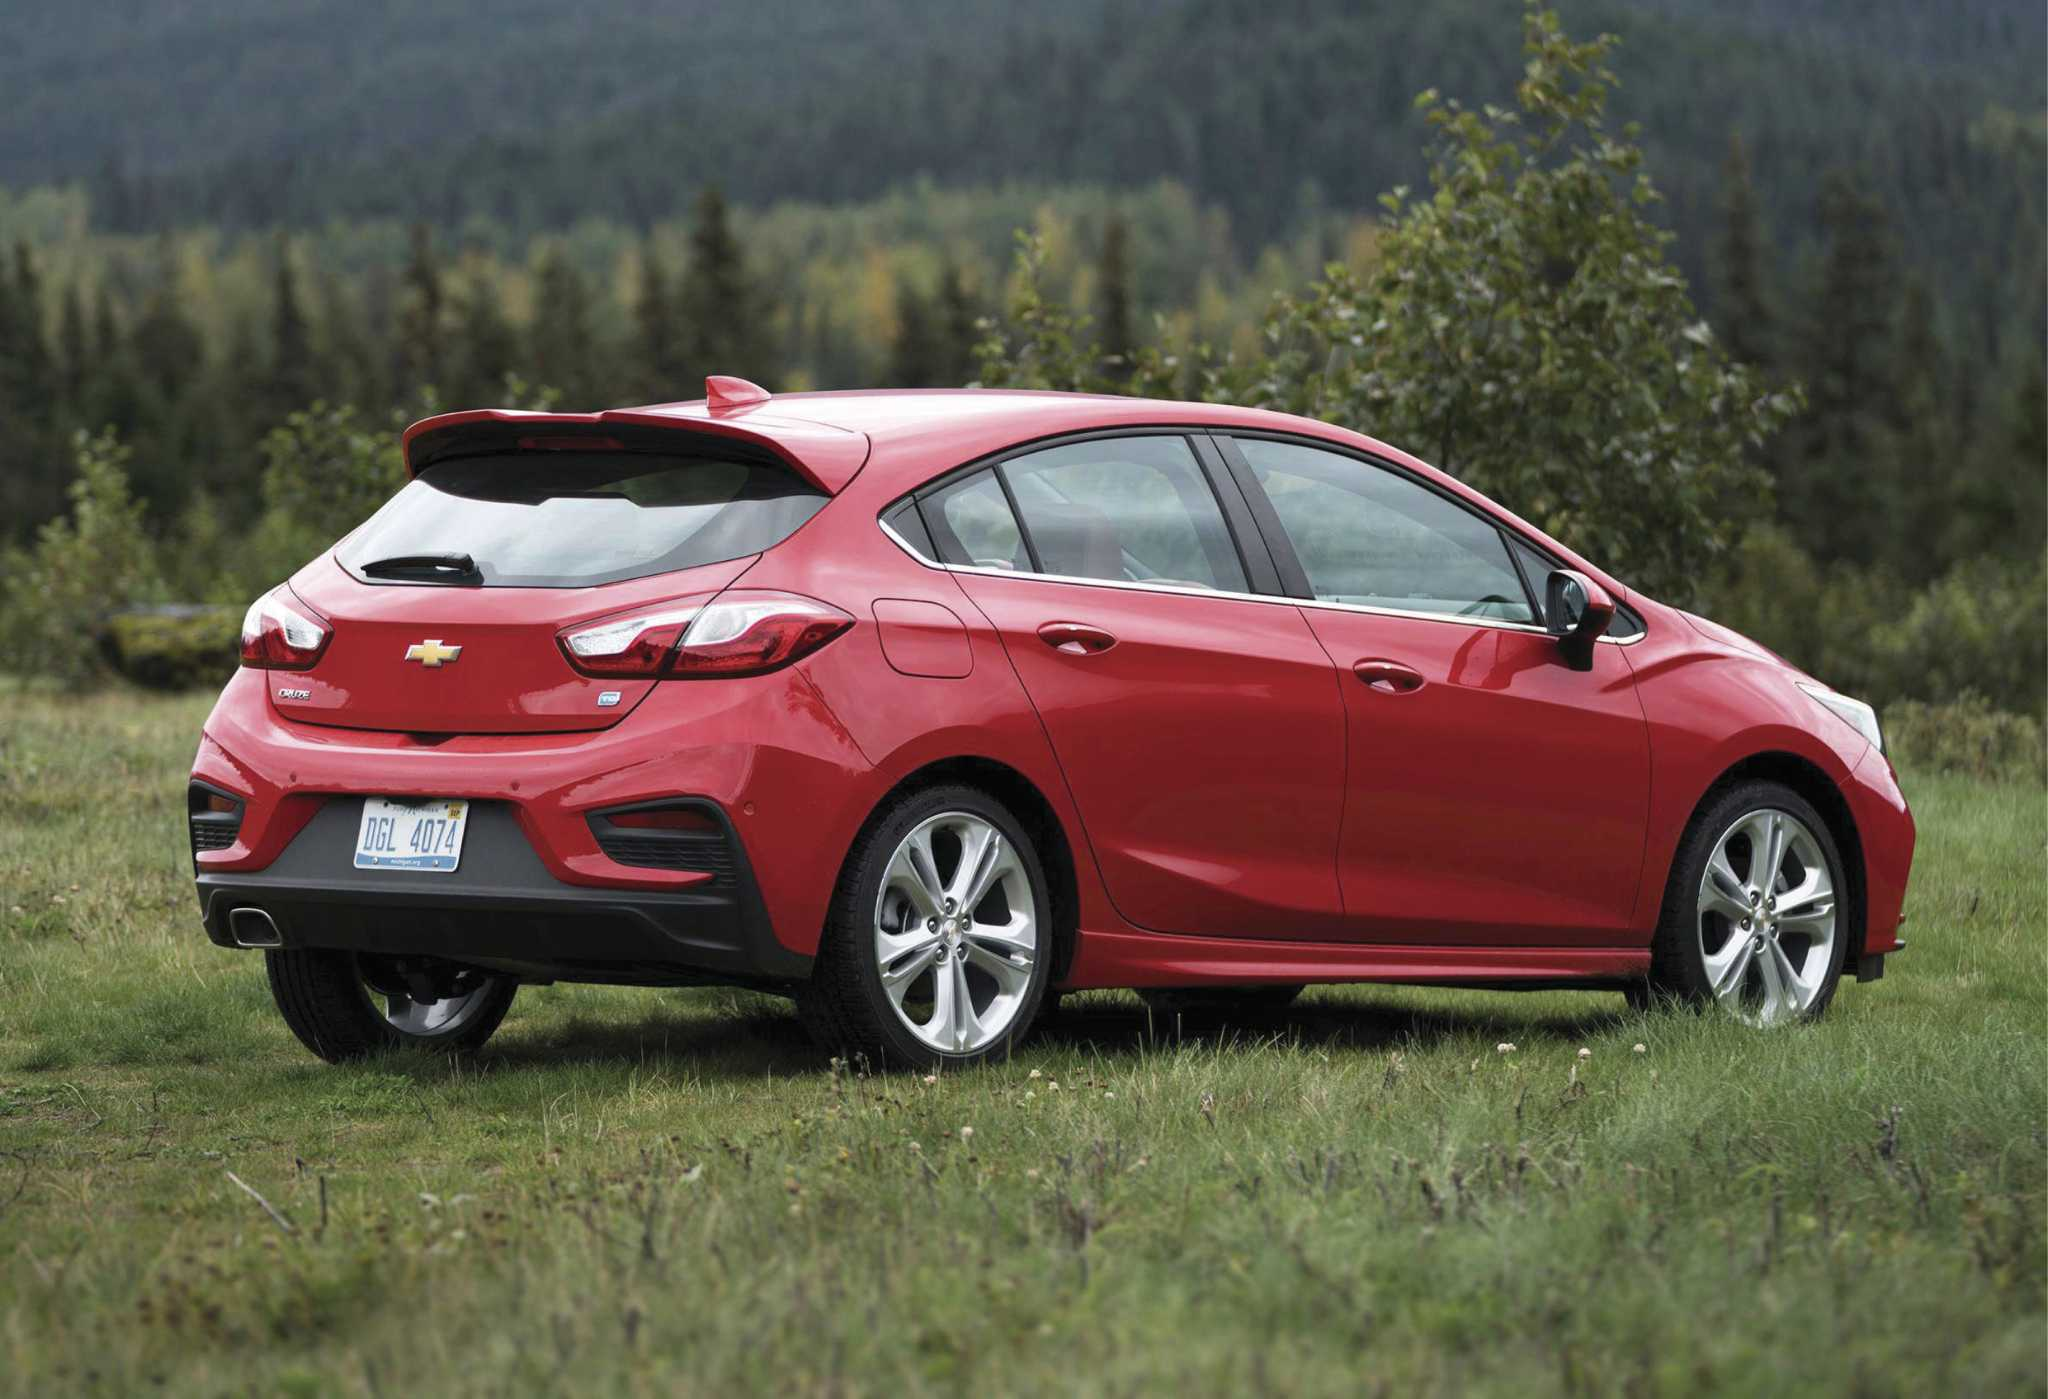 Chevy's smooth diesel Cruze hatchback boasts 600-mile range